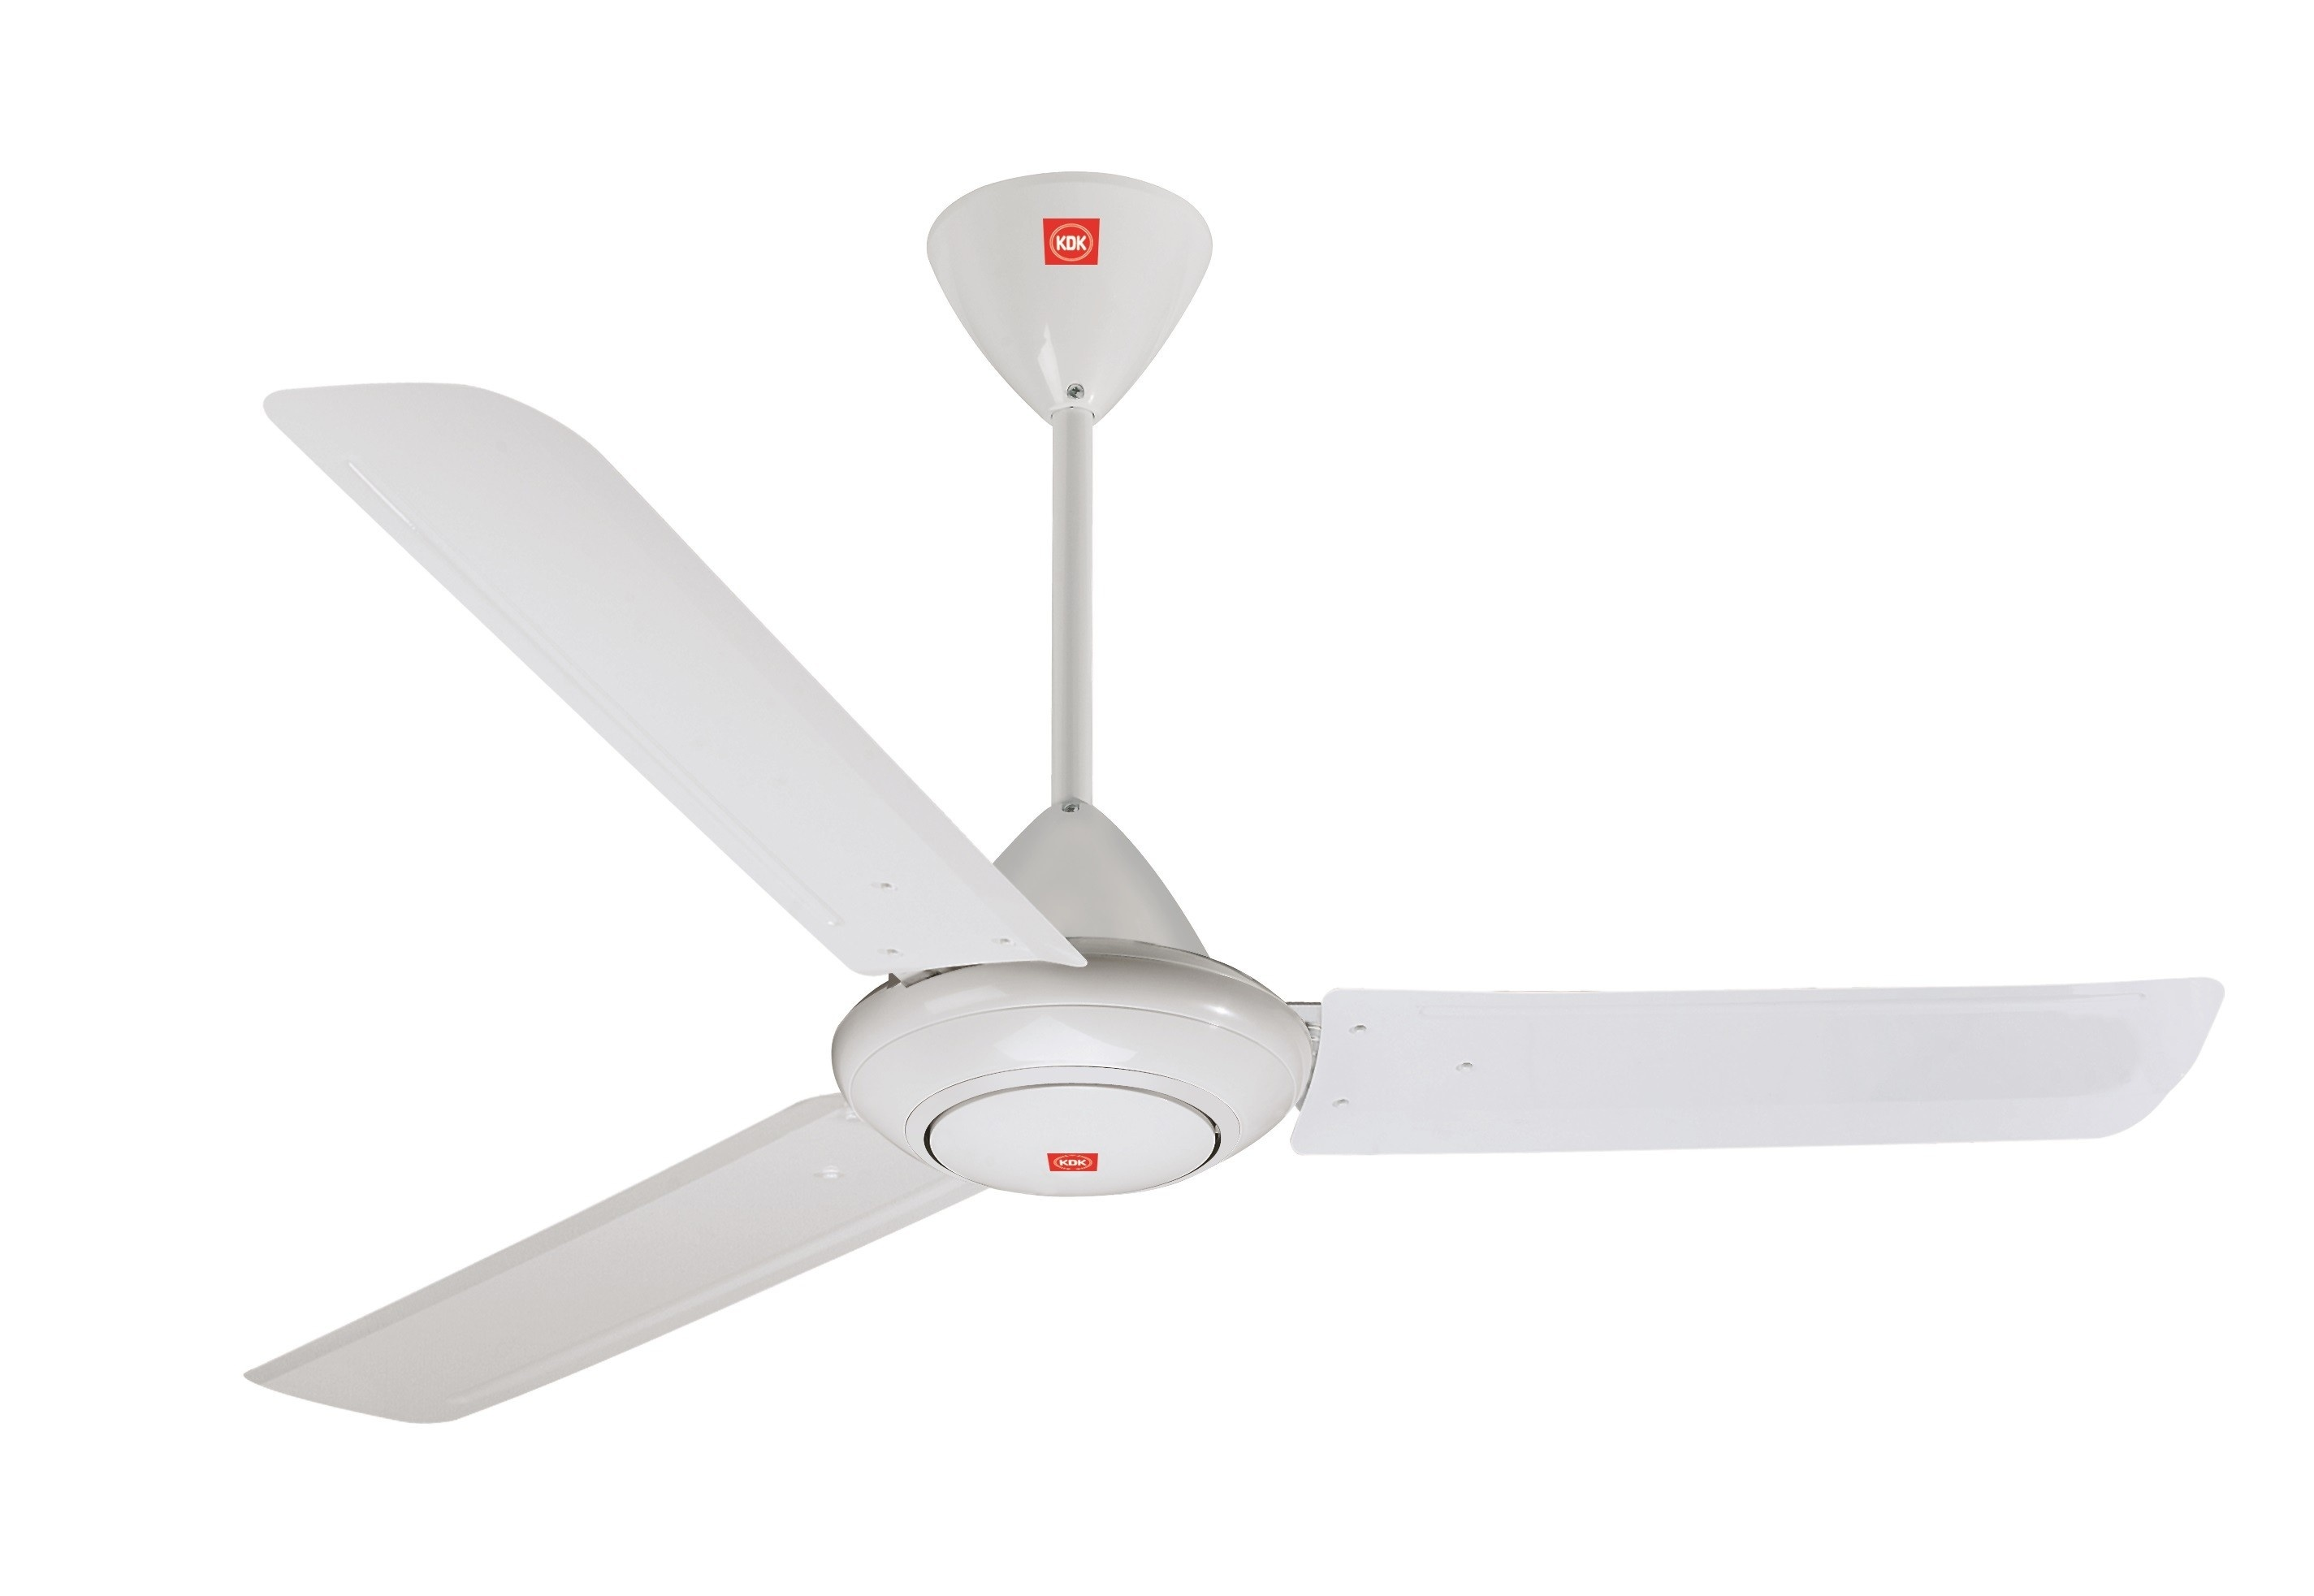 Qoo10 kdk ceiling fan m60sgblackwhite singapore warranty show all item images aloadofball Image collections